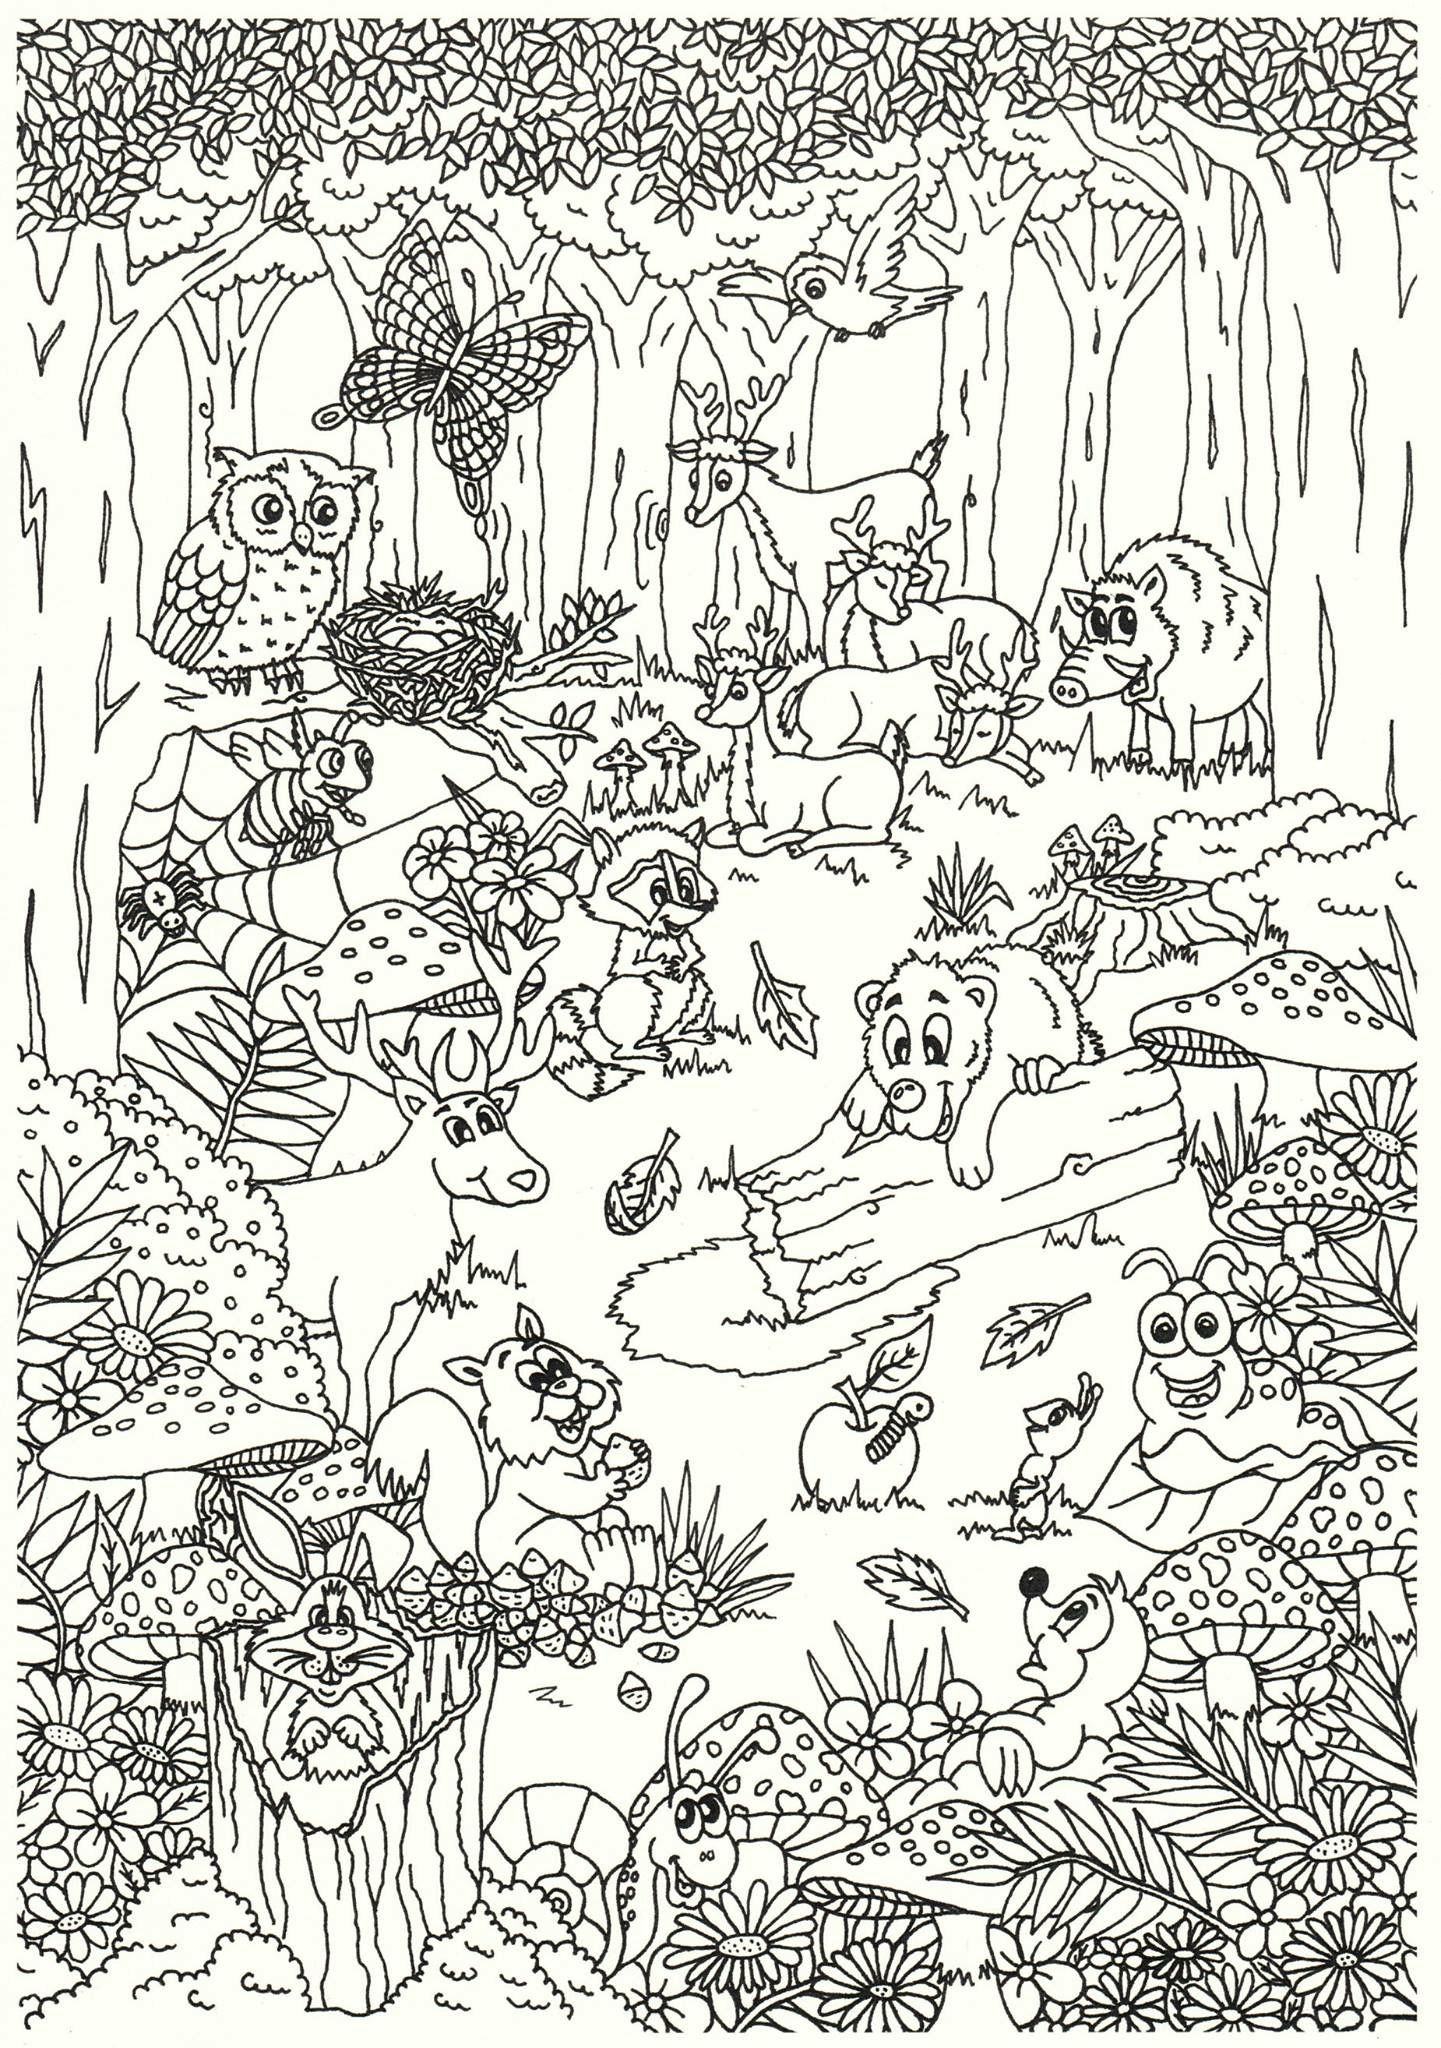 Pin By Irade On Kleurplaten Owl Coloring Pages Colouring Pages Coloring Pages